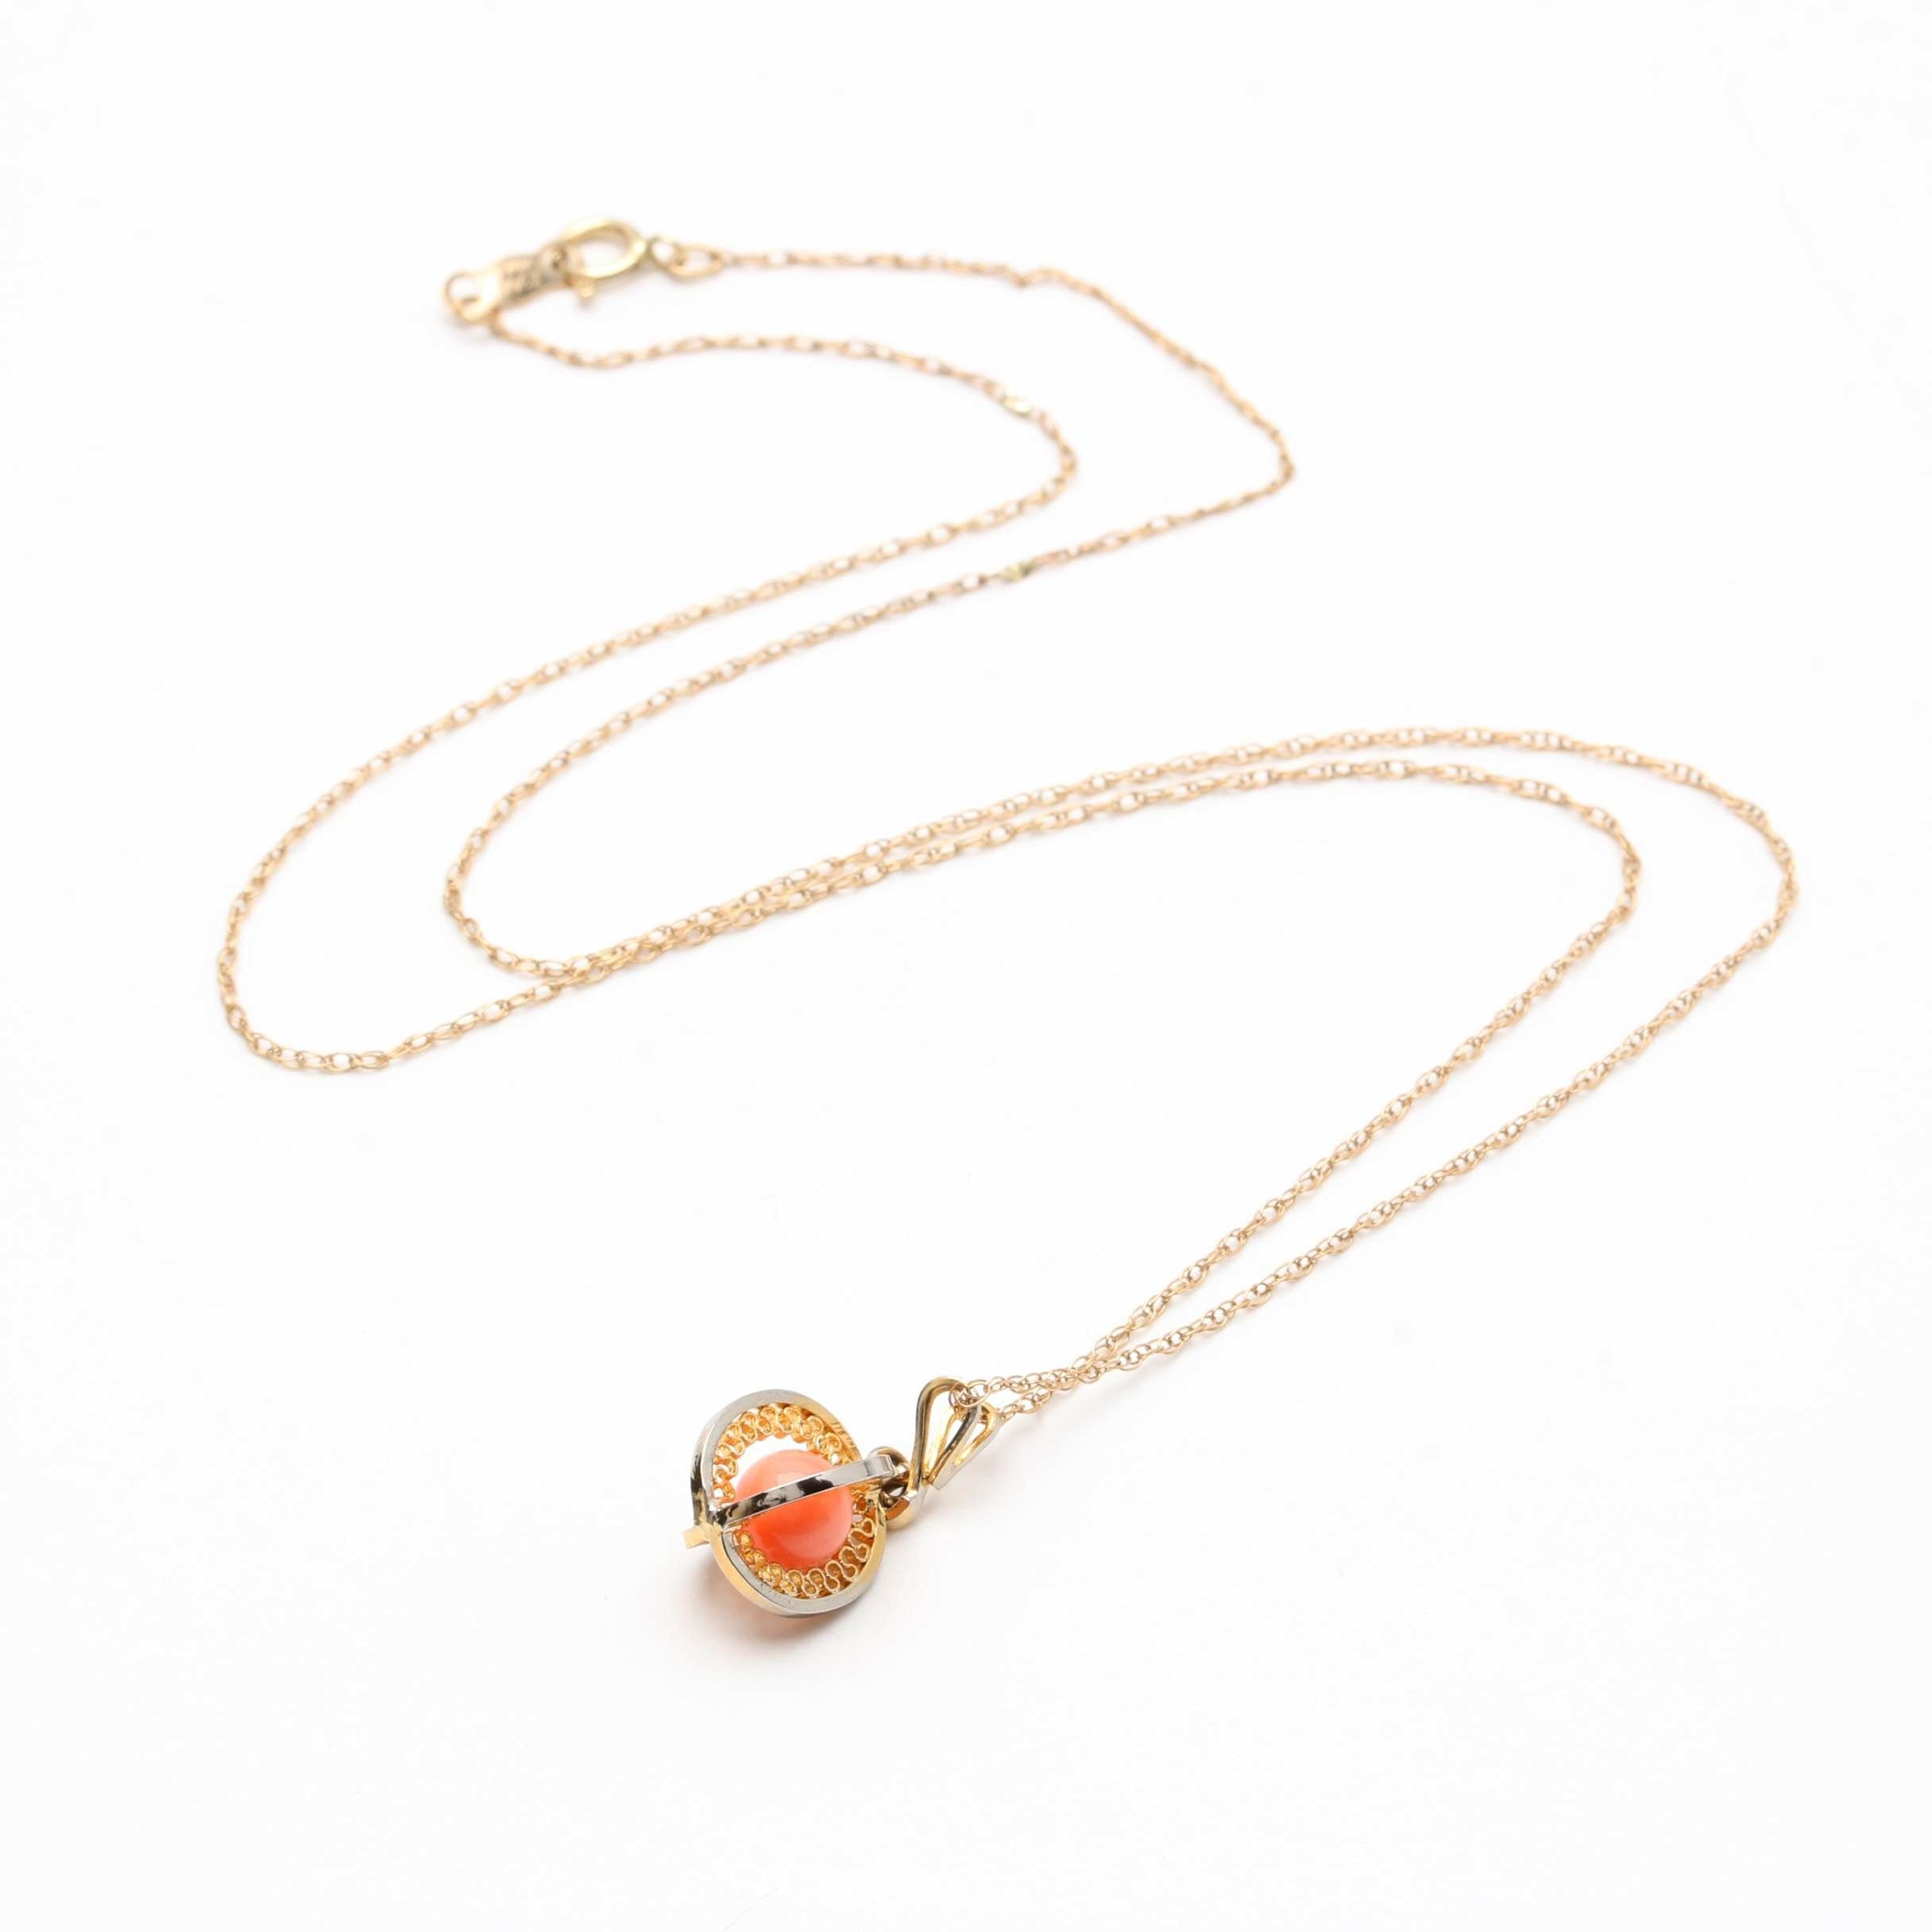 14K Yellow Gold Chain Necklace with Gold Tone Coral Bead Pendant